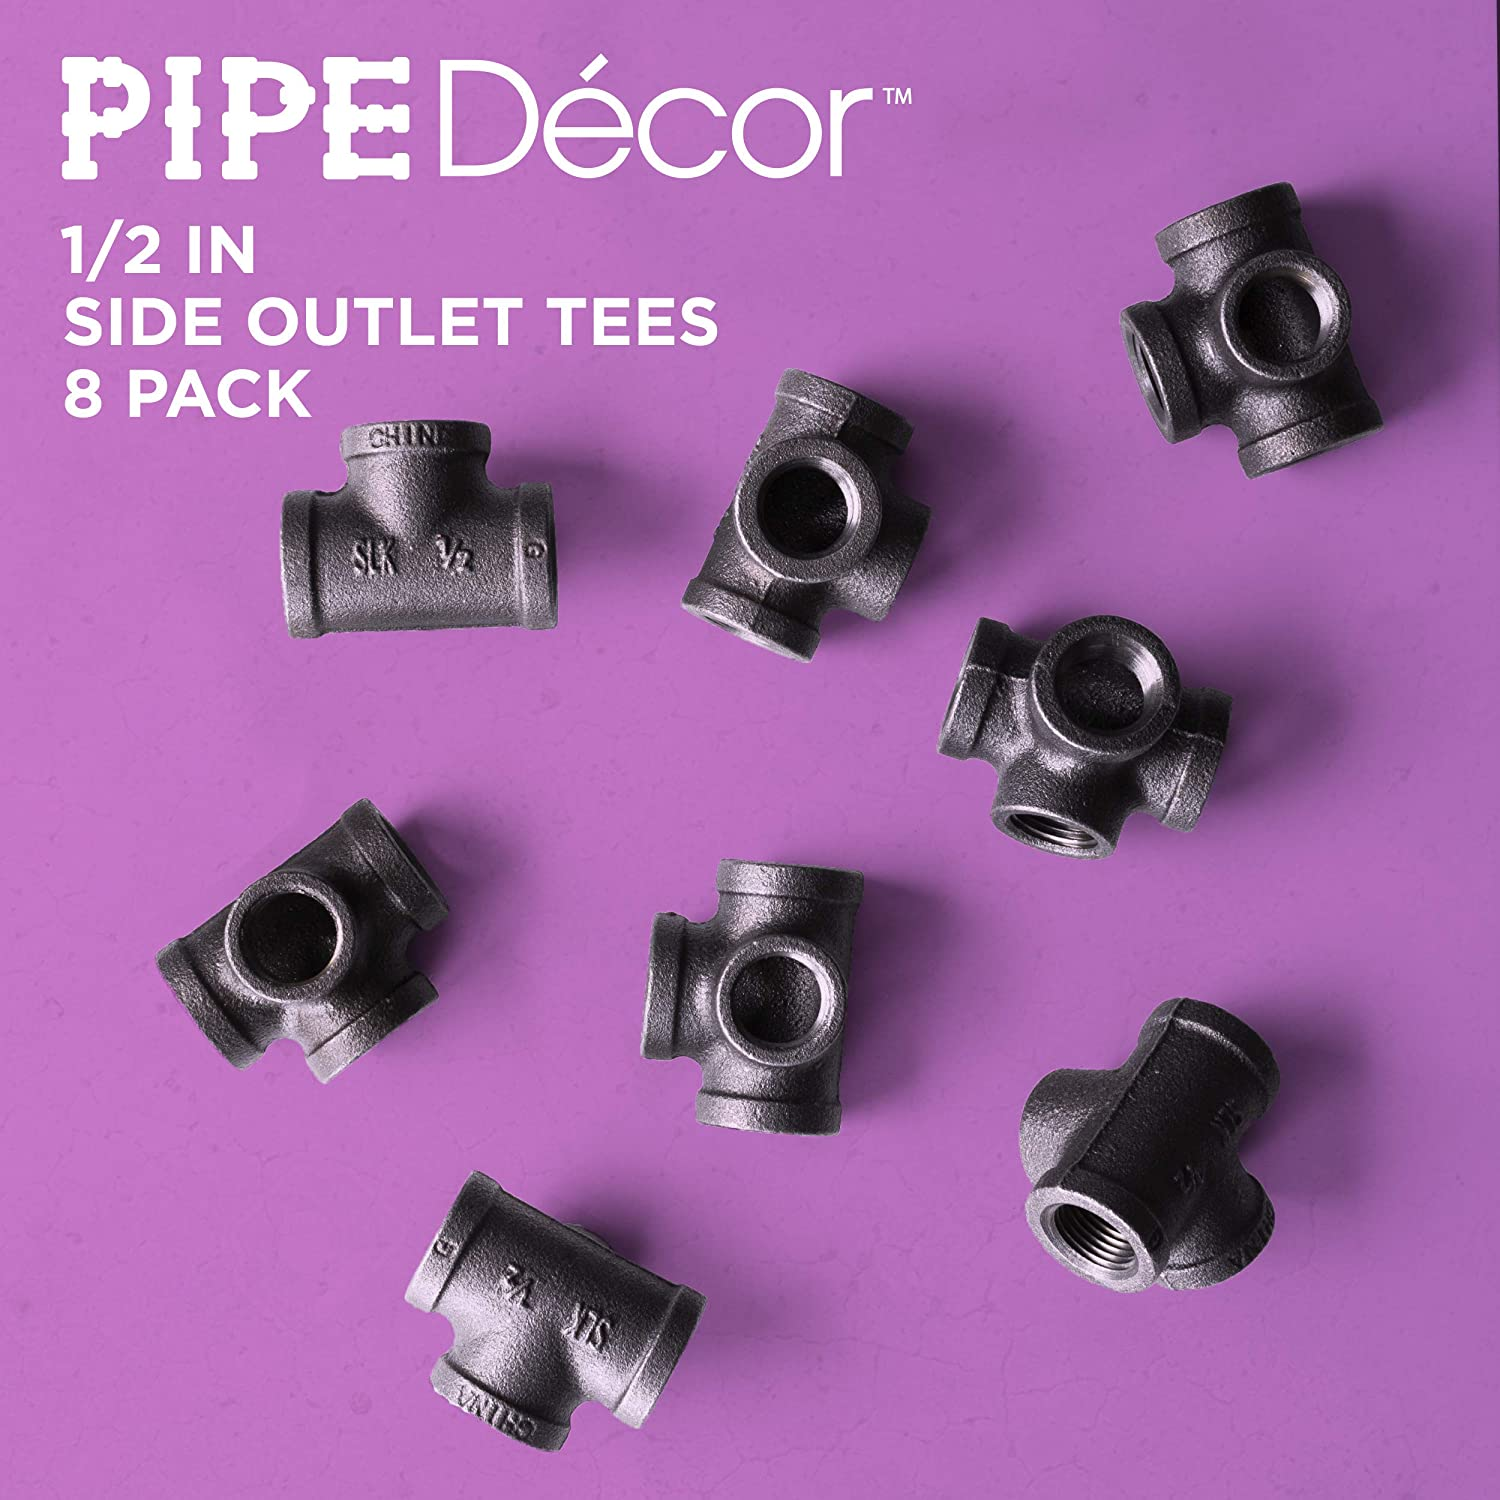 1/2 Inch Side Outlet Tee (4-Way) Industrial Cast Iron Pipe Fitting 8 Pack by Pipe Decor, Pipe Components For Building Tables, Chairs, Shelving, and Custom Furniture, Fits Half Inch Pipes, Eight Pack - -